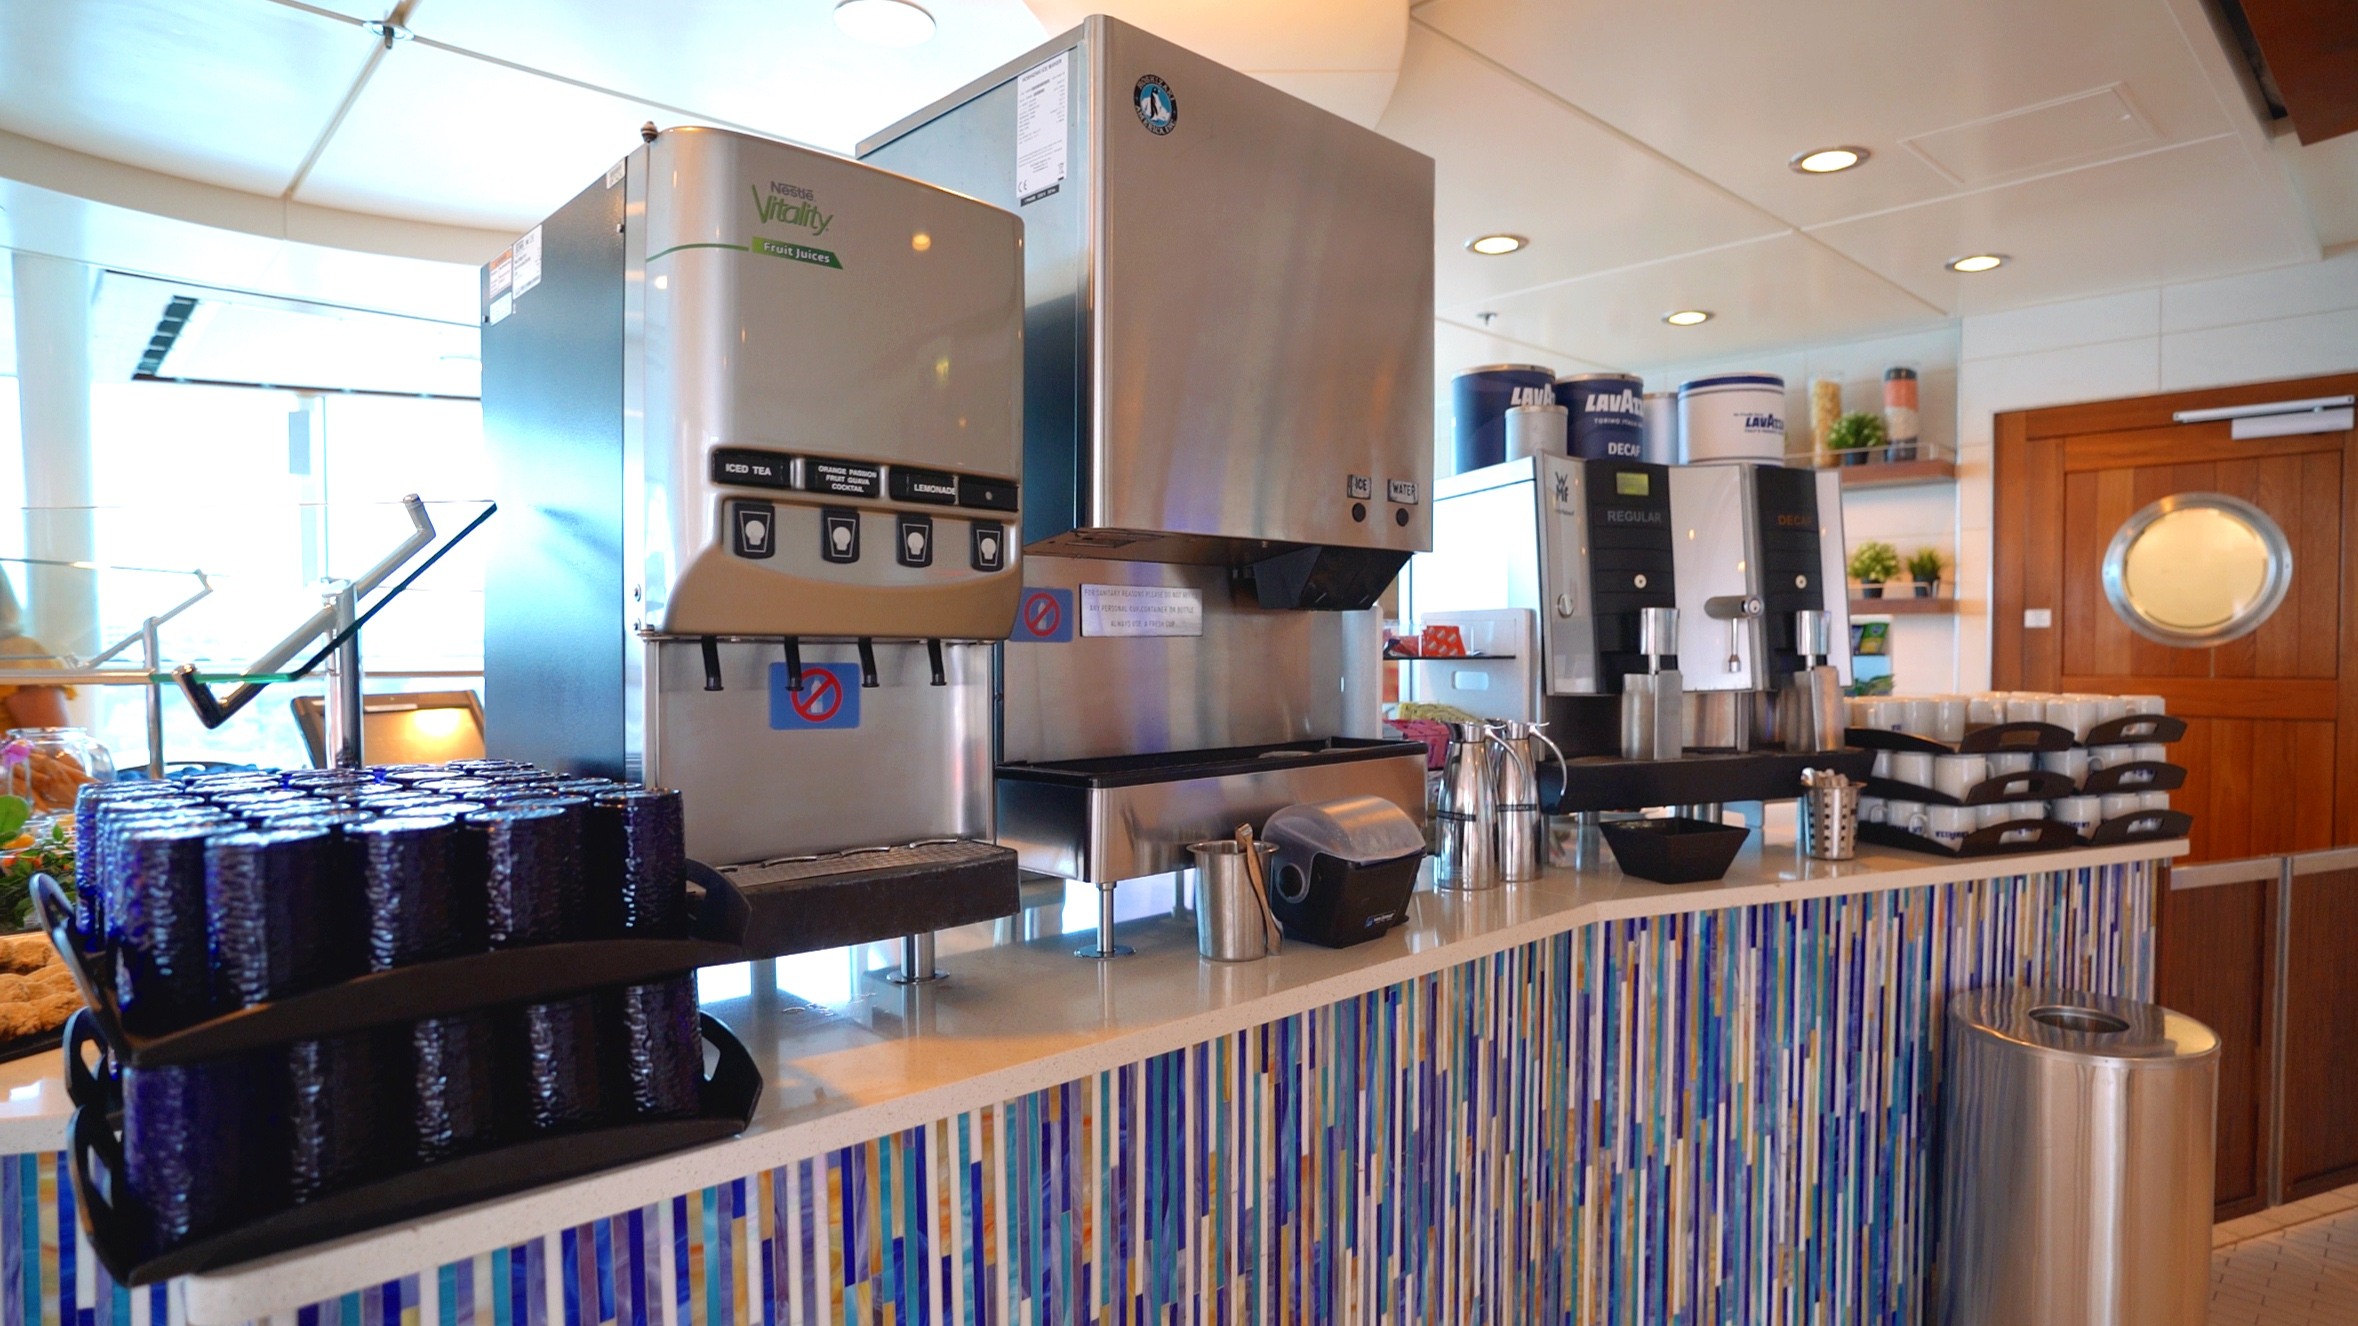 Self service drinks station in the Aqua Spa cafe